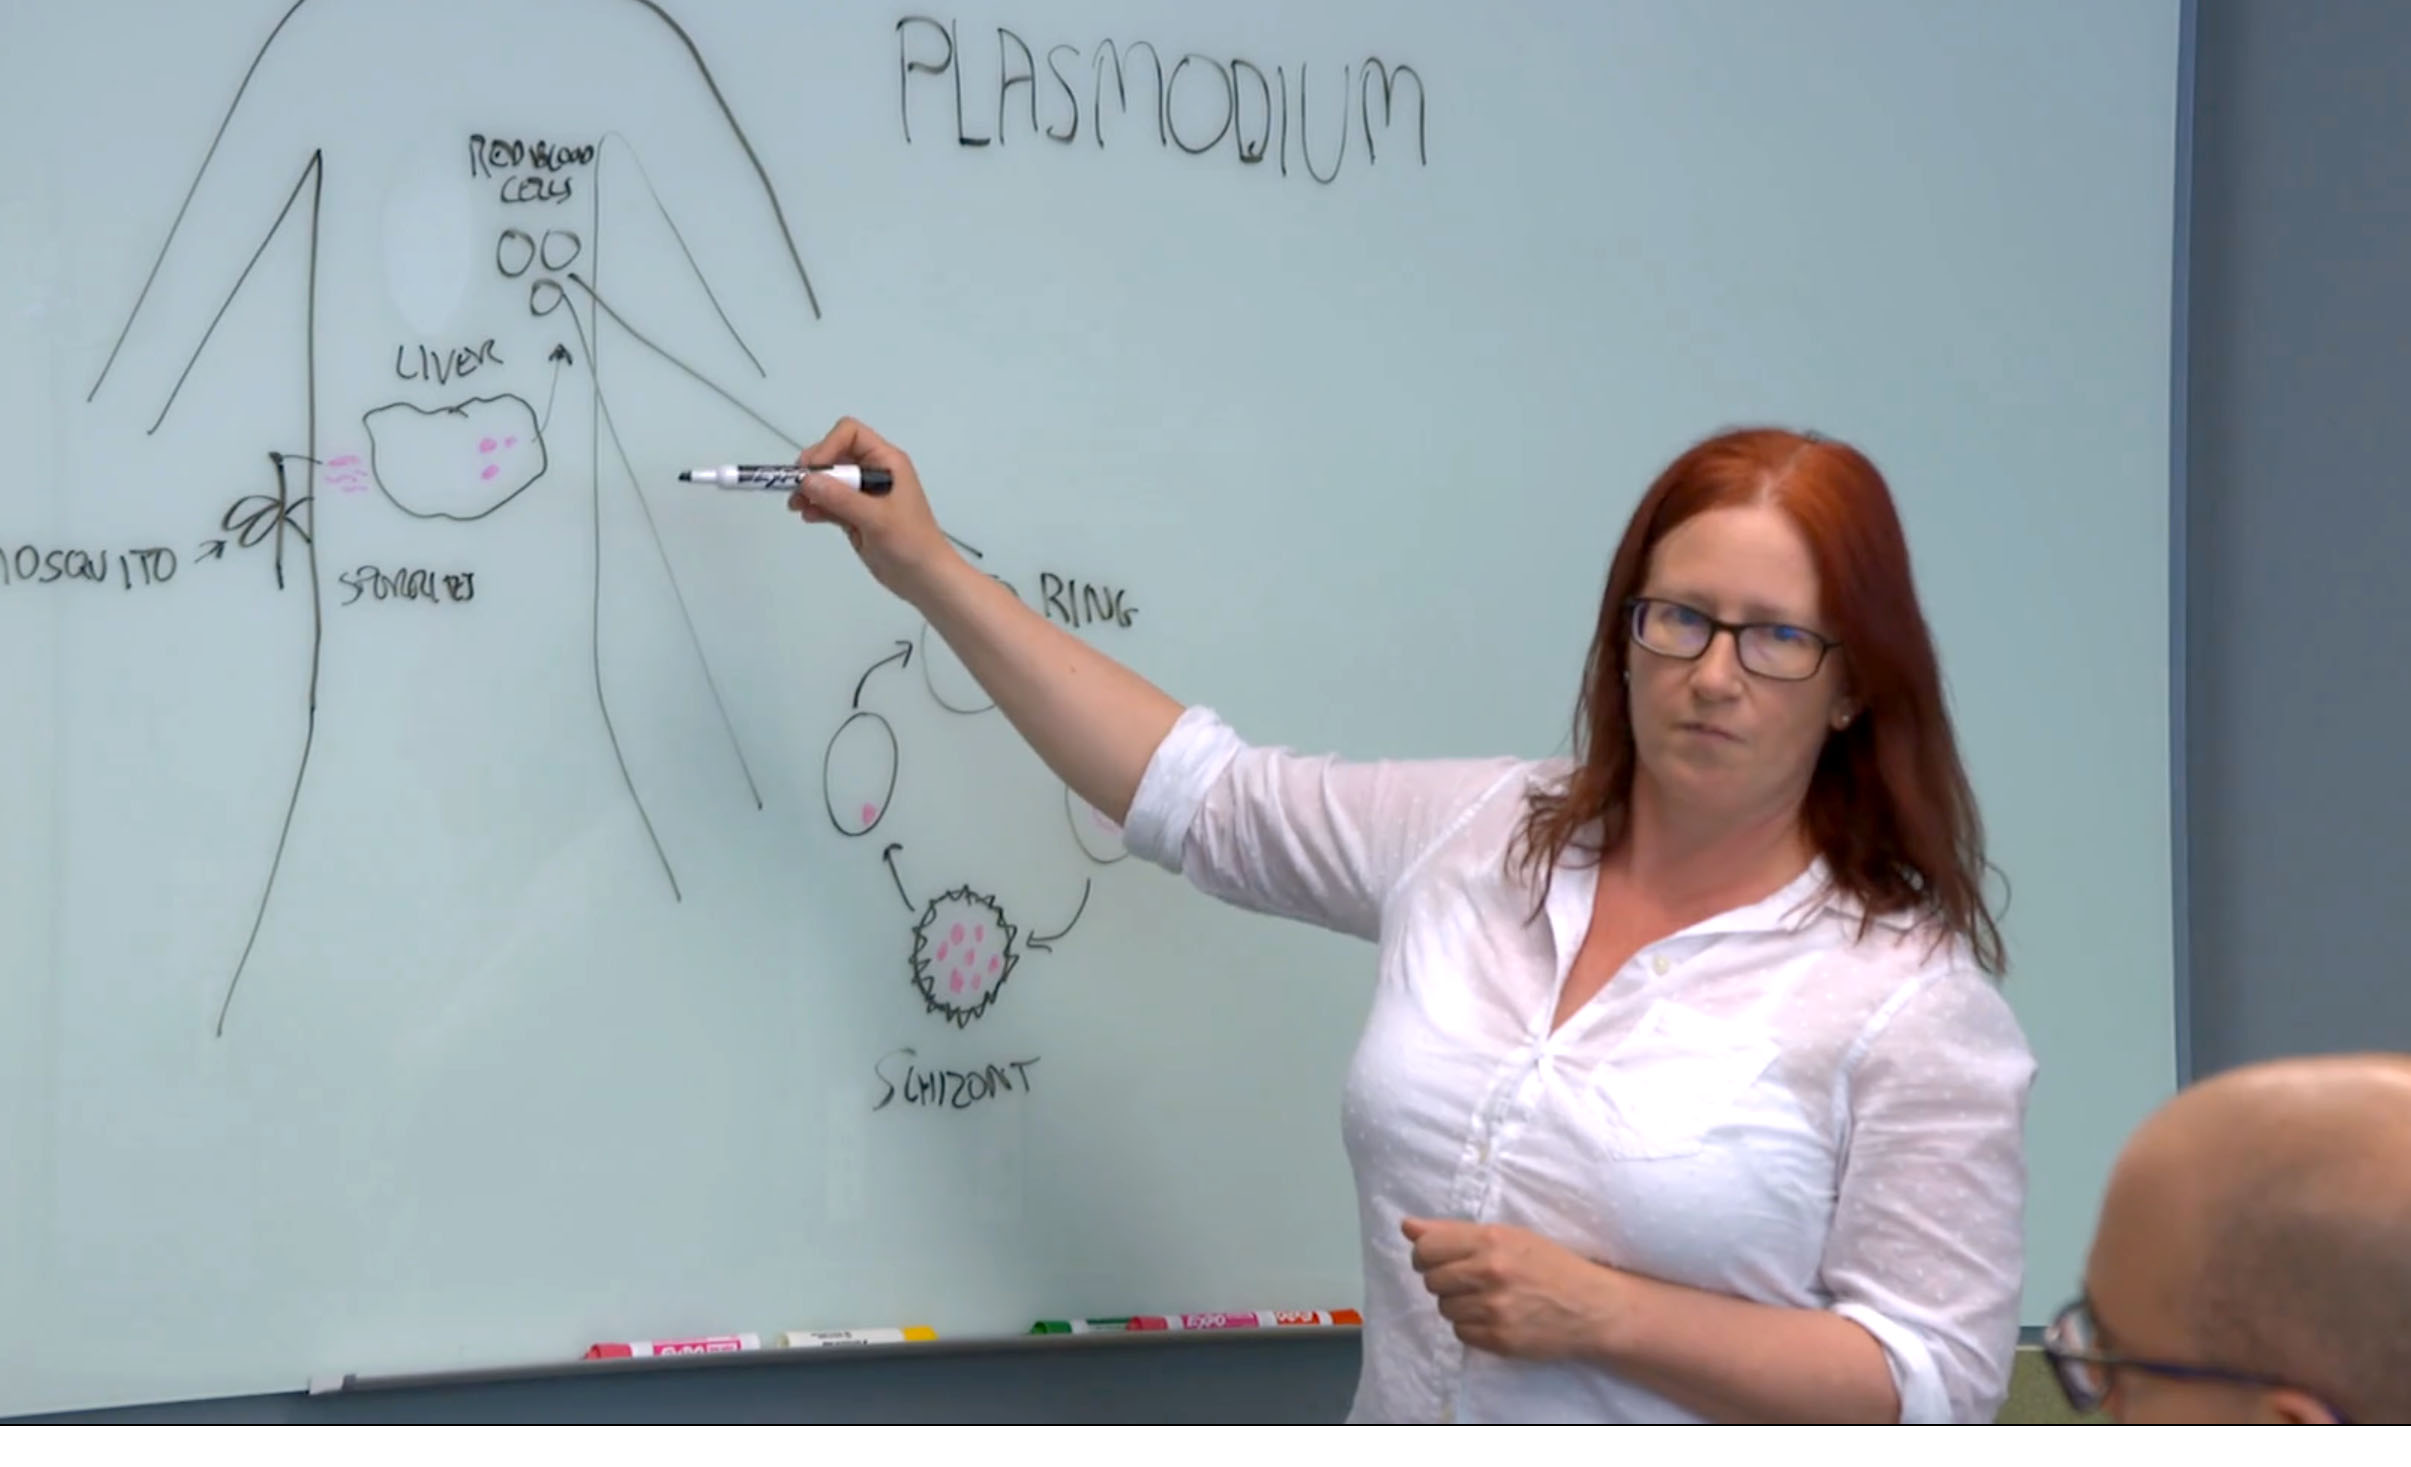 Pathologist Tracey Lamb stands at a whiteboard explaining to a group the lifecycle of the Plasmodium falciparum parasite by drawing a diagram of a human body on the board.